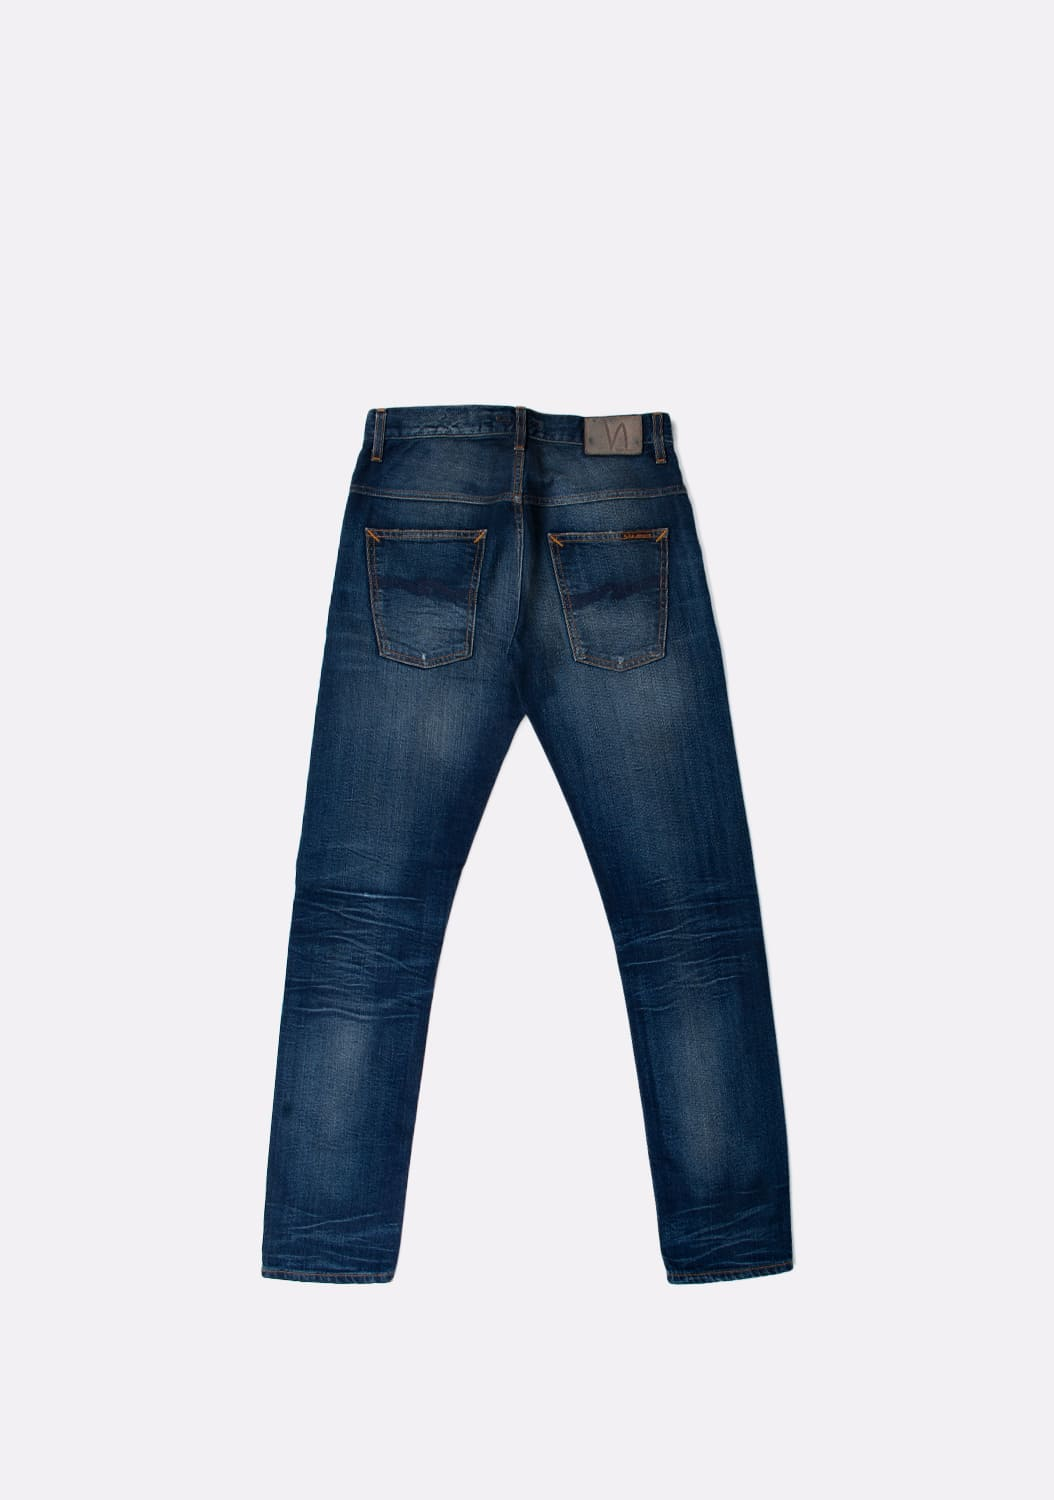 Nudie-Thin-Finn-Jonas-Replica-Selvage-Selvedge-melyni-dzinsai-dydis-31-32 (4)